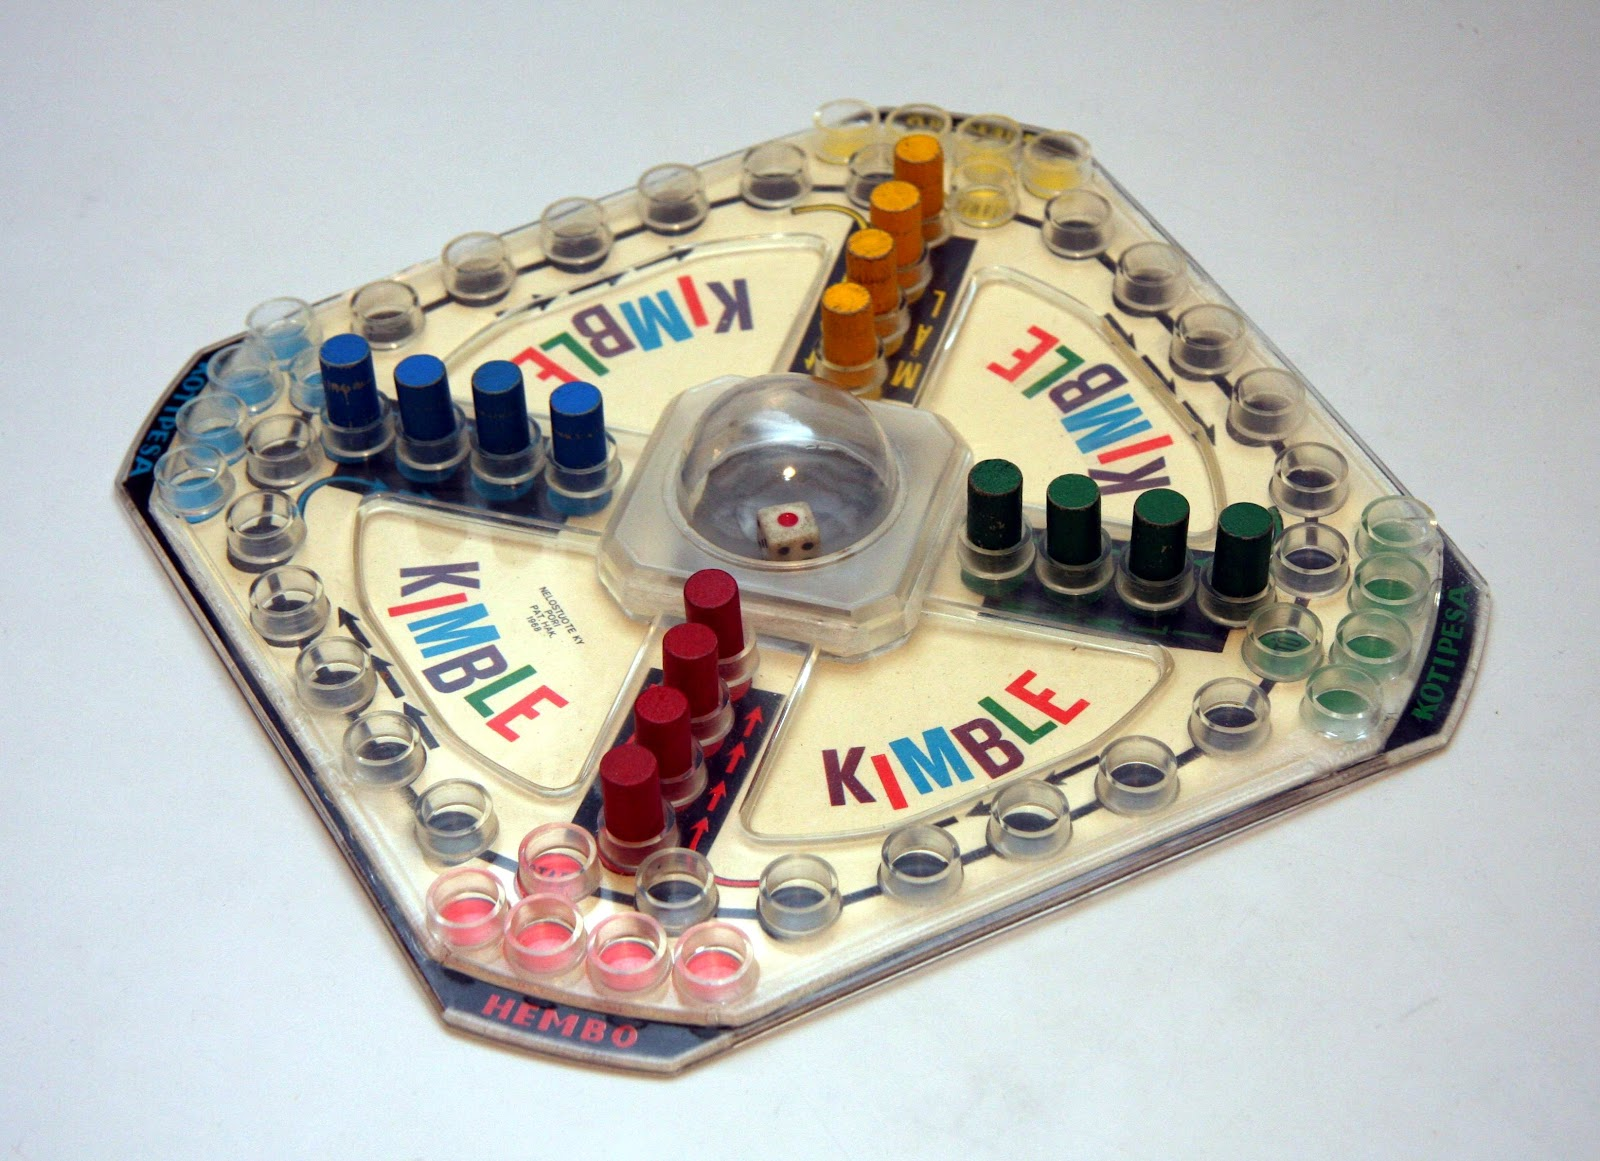 1968 version of the game.